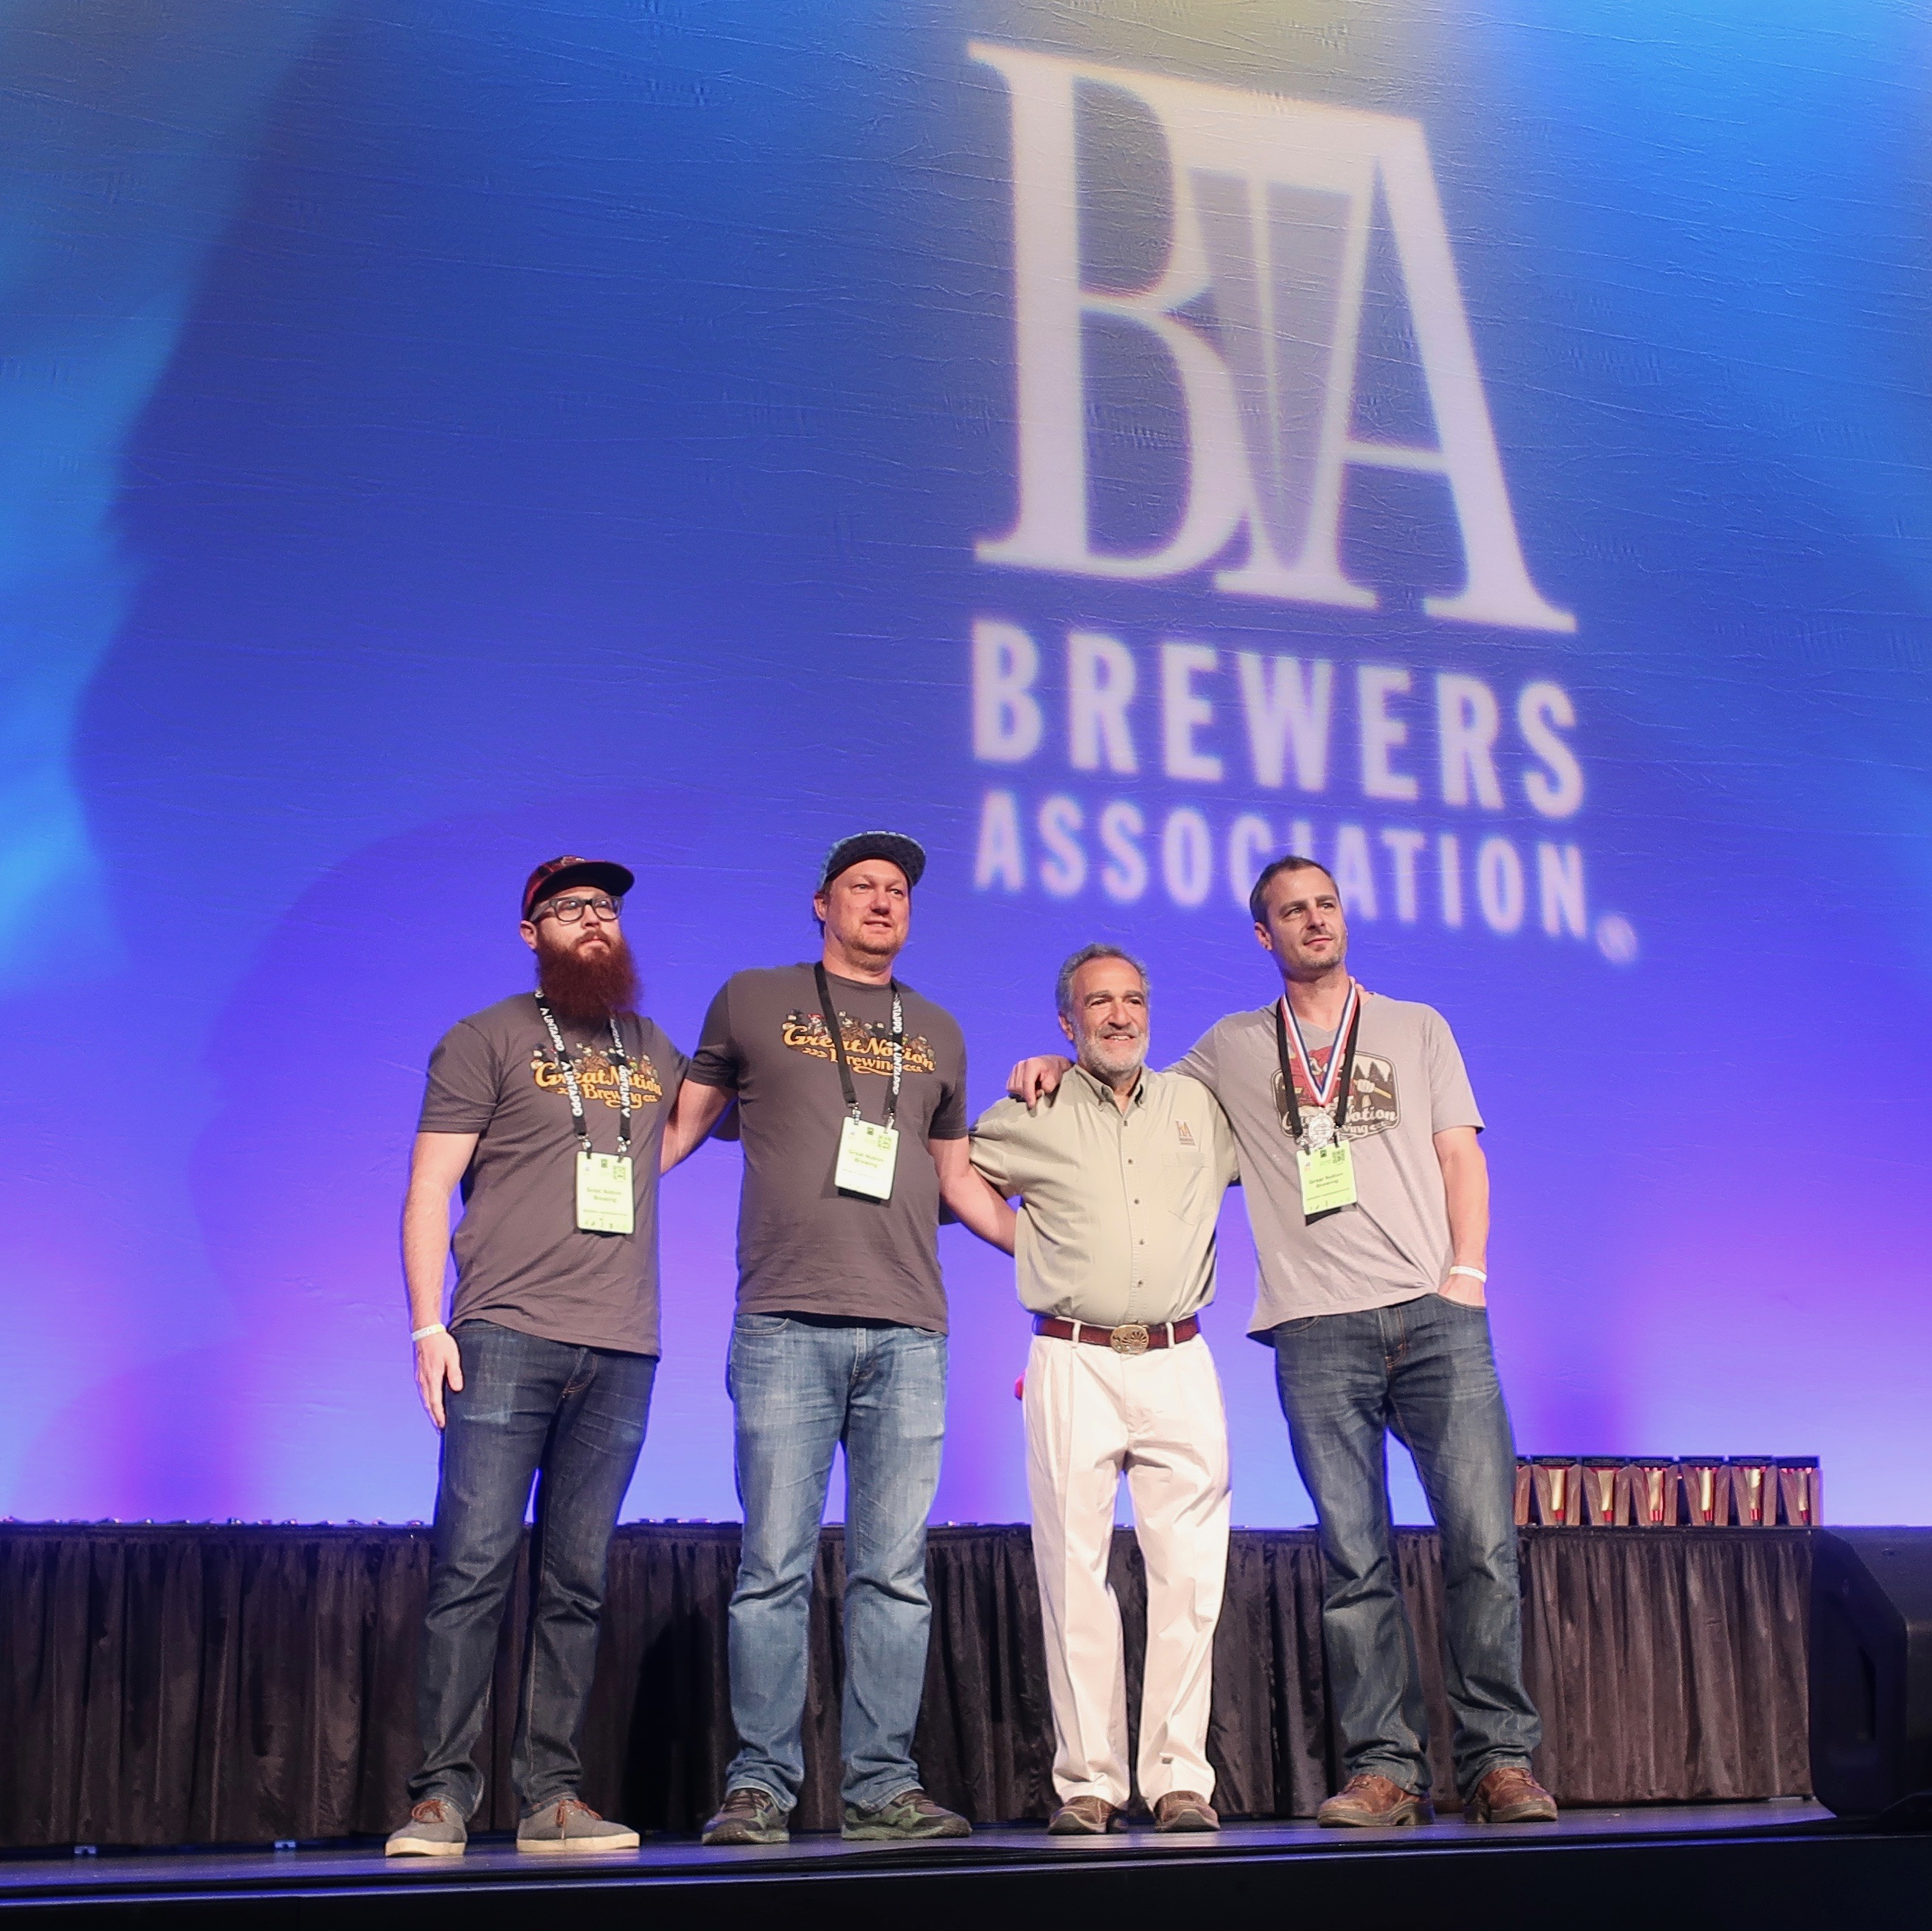 Great Notion on stage for its medal at the 2018 Great American Beer Festival.